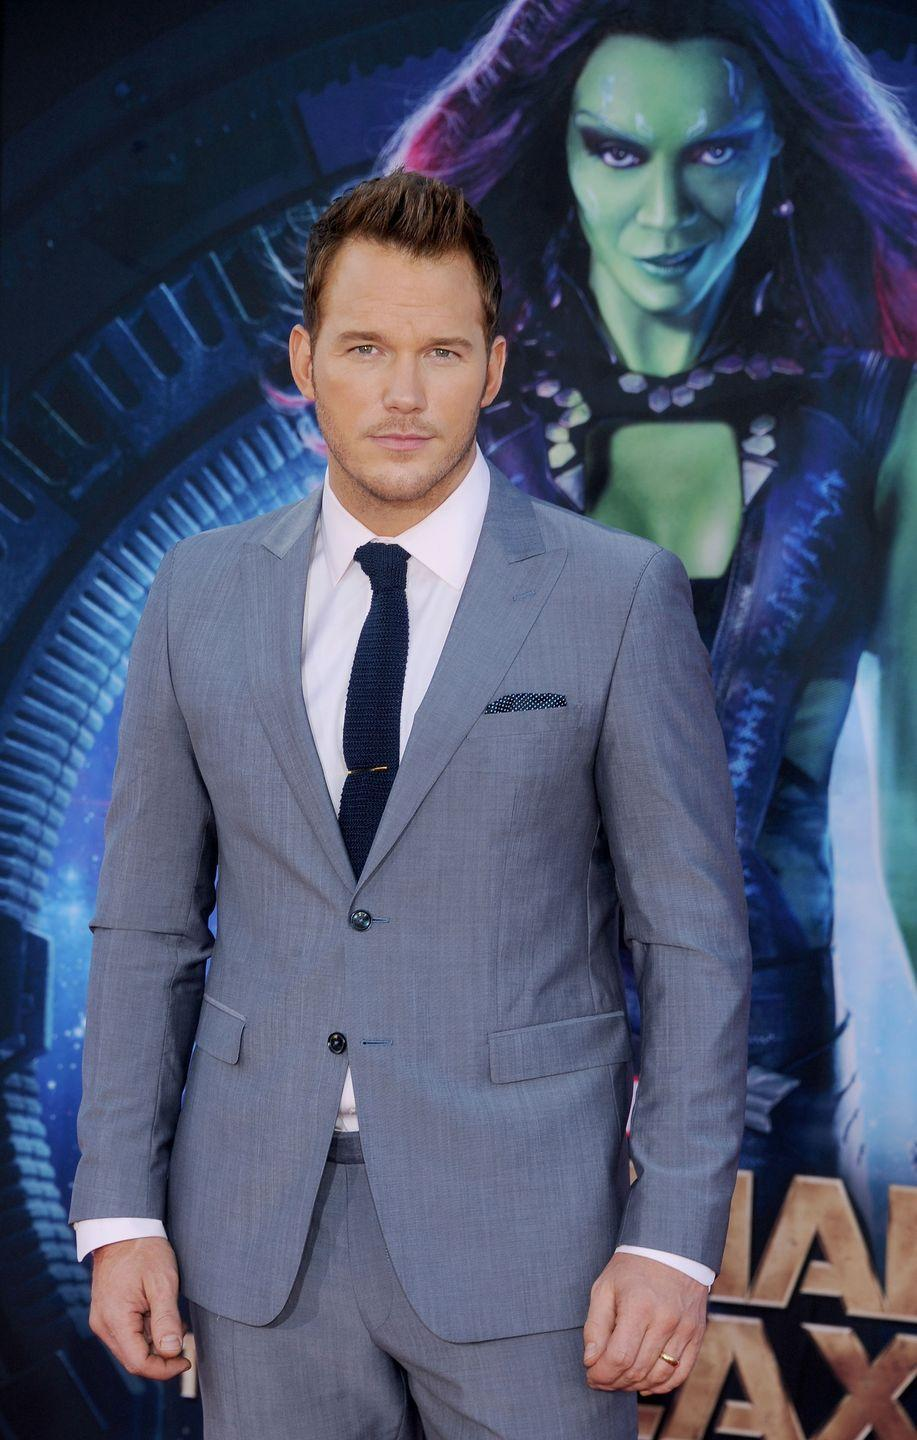 <p>After becoming a fan favorite as the lovable Andy Dwyer on <em>Parks and Recreation, </em>Chris Pratt became a leading man with a major glow-up in 2014. First, he starred in <em>Guardians of the Galaxy </em>in 2014, then he appeared in <em>Jurassic World</em> the following year.</p>